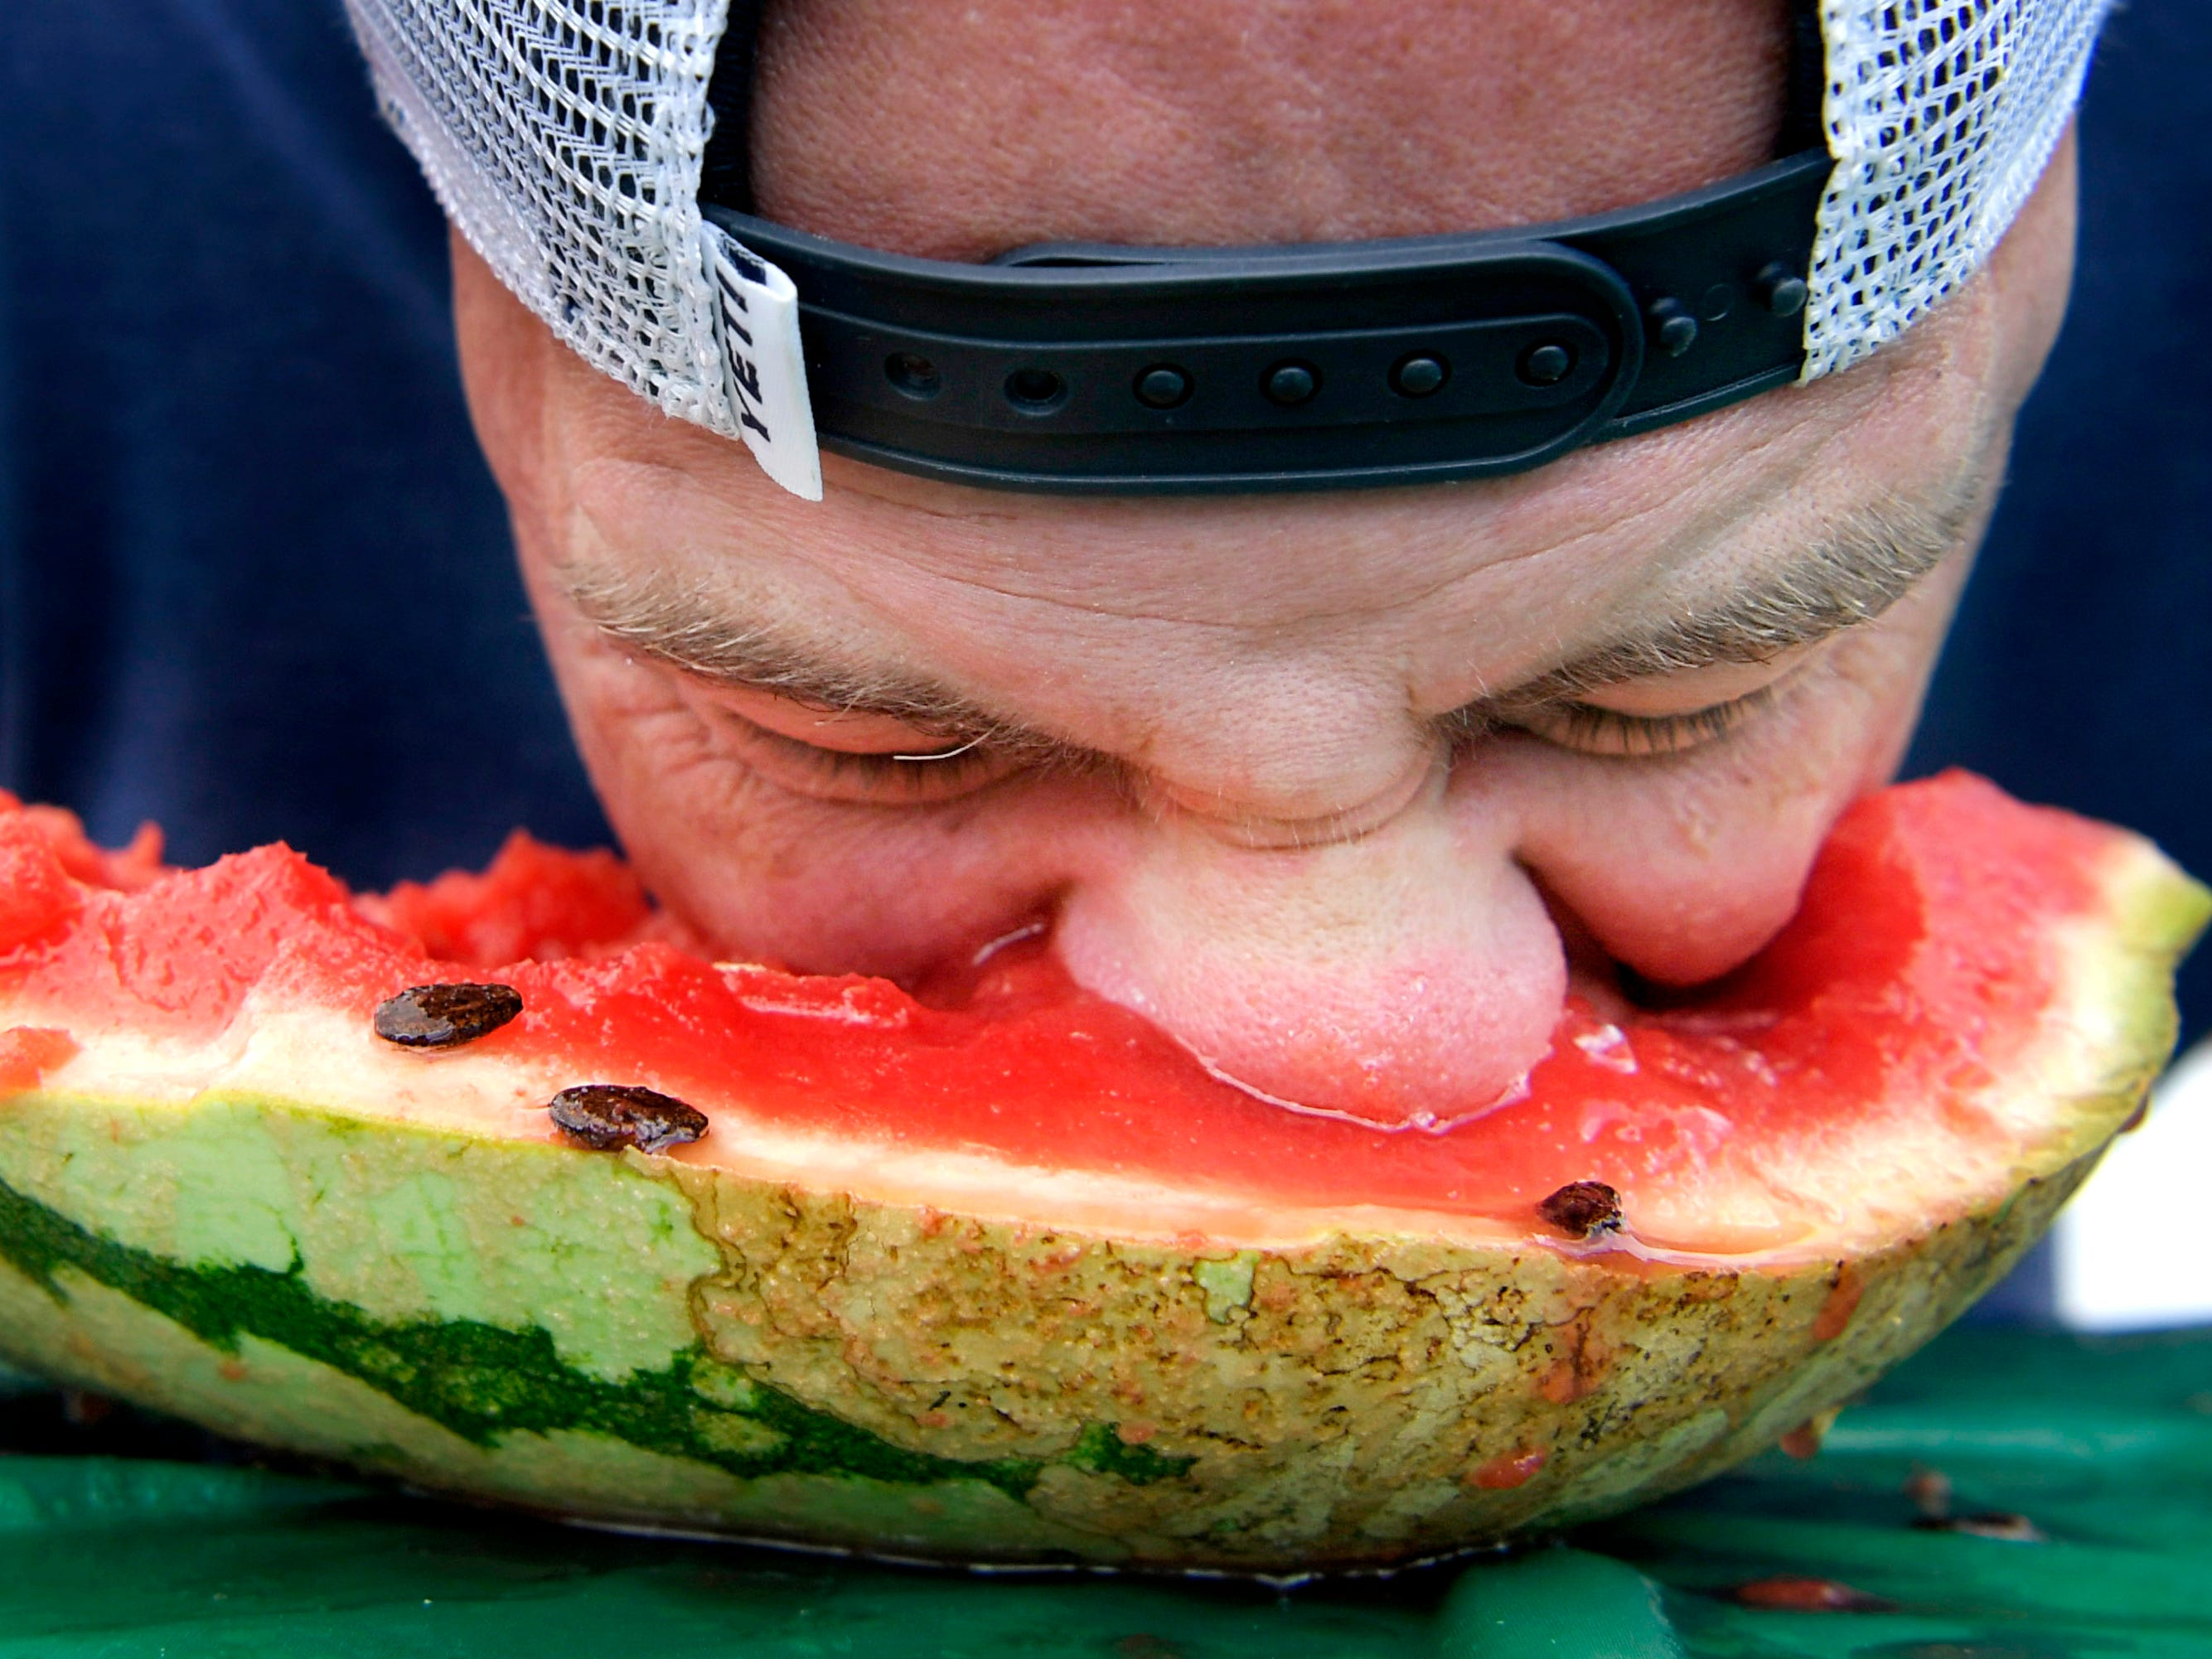 Tim Malone competes in the adult watermelon eating contest during the Franklin Watermelon Festival at the Franklin Farmers Market on Saturday, Aug. 18, 2018.